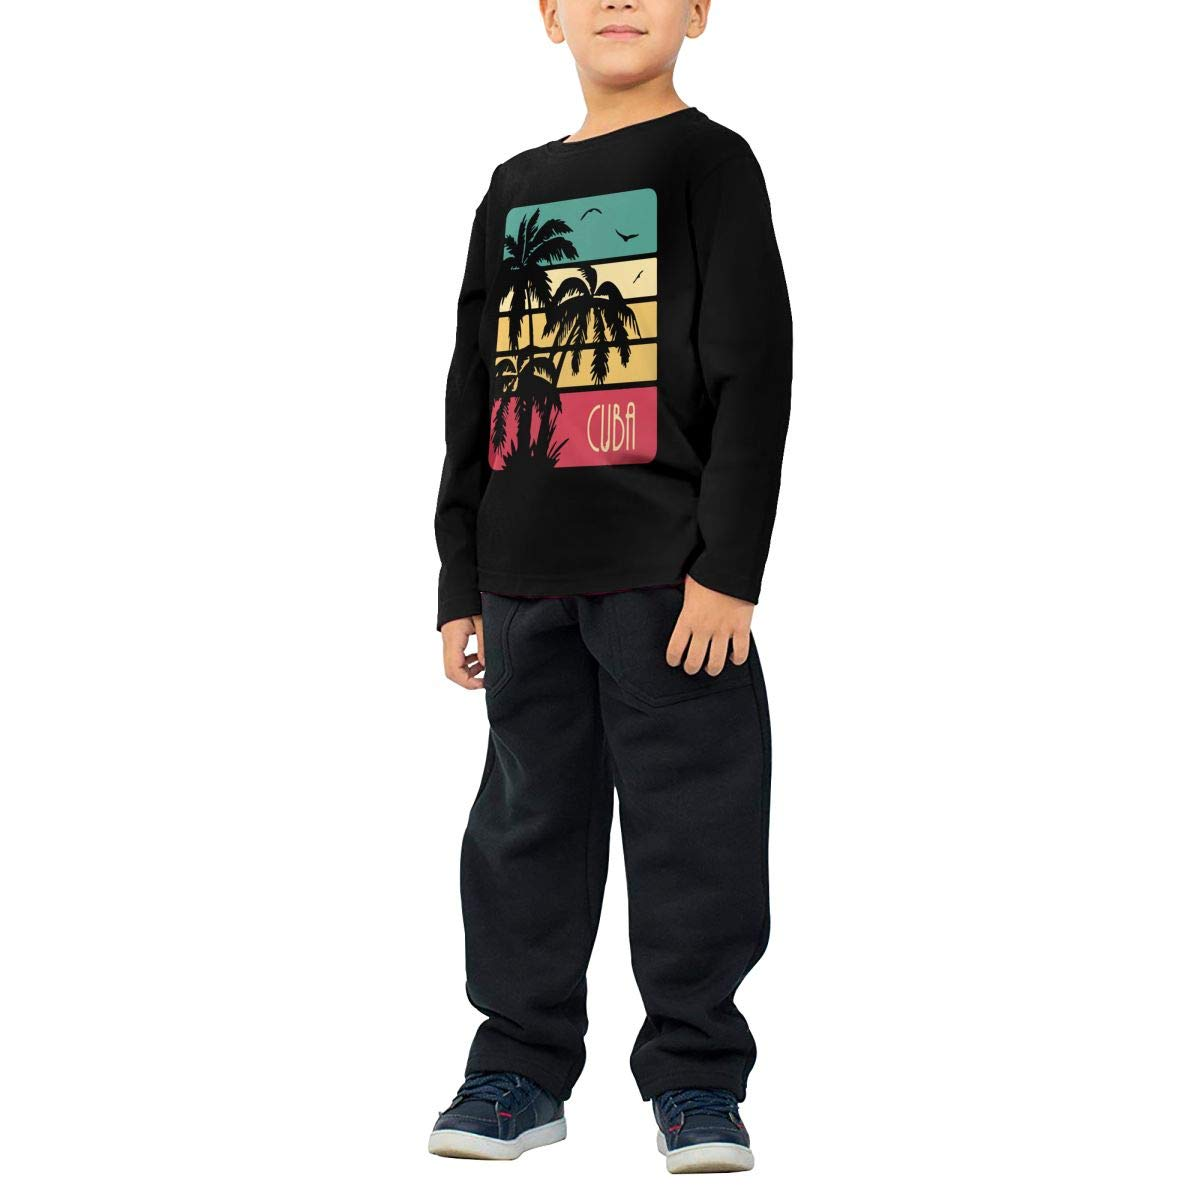 Cuba Vintage Sunset Kids Boys Girls Crew Neck Long Sleeve Shirt T-Shirt for Toddlers